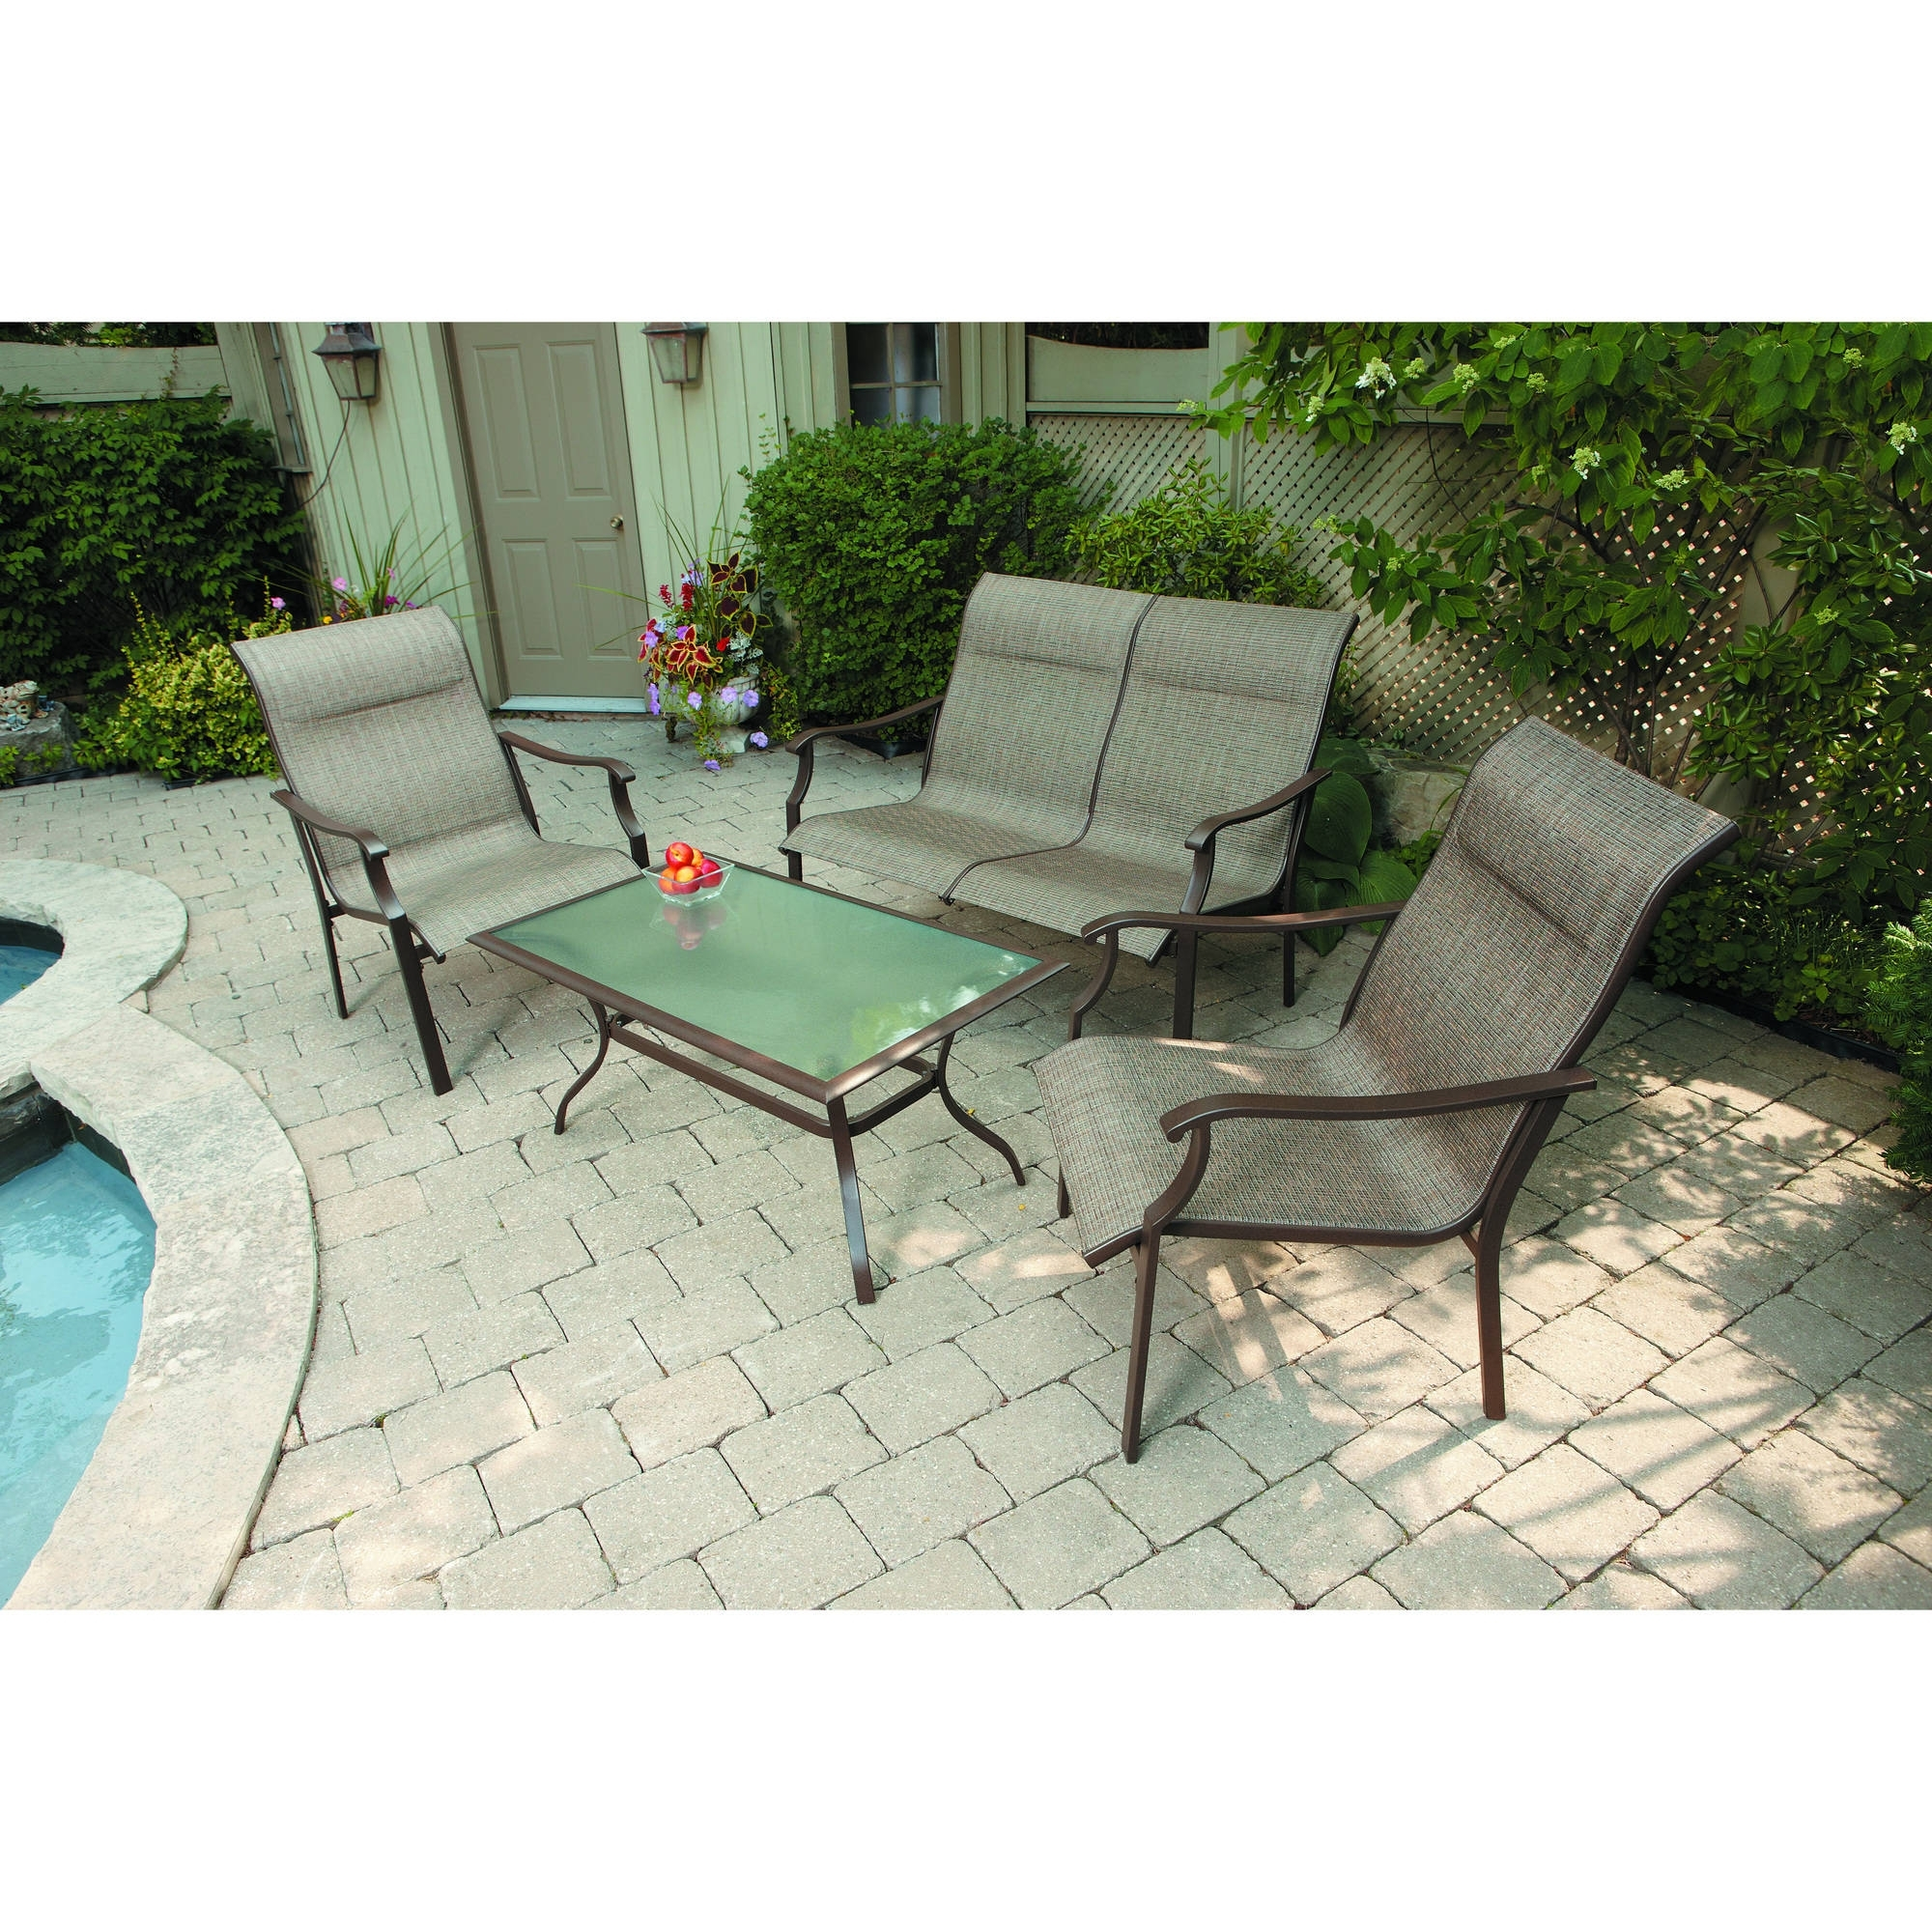 Mainstays York 4Pc Sling Sofa Set – Walmart Inside Latest Sling Patio Conversation Sets (View 2 of 15)